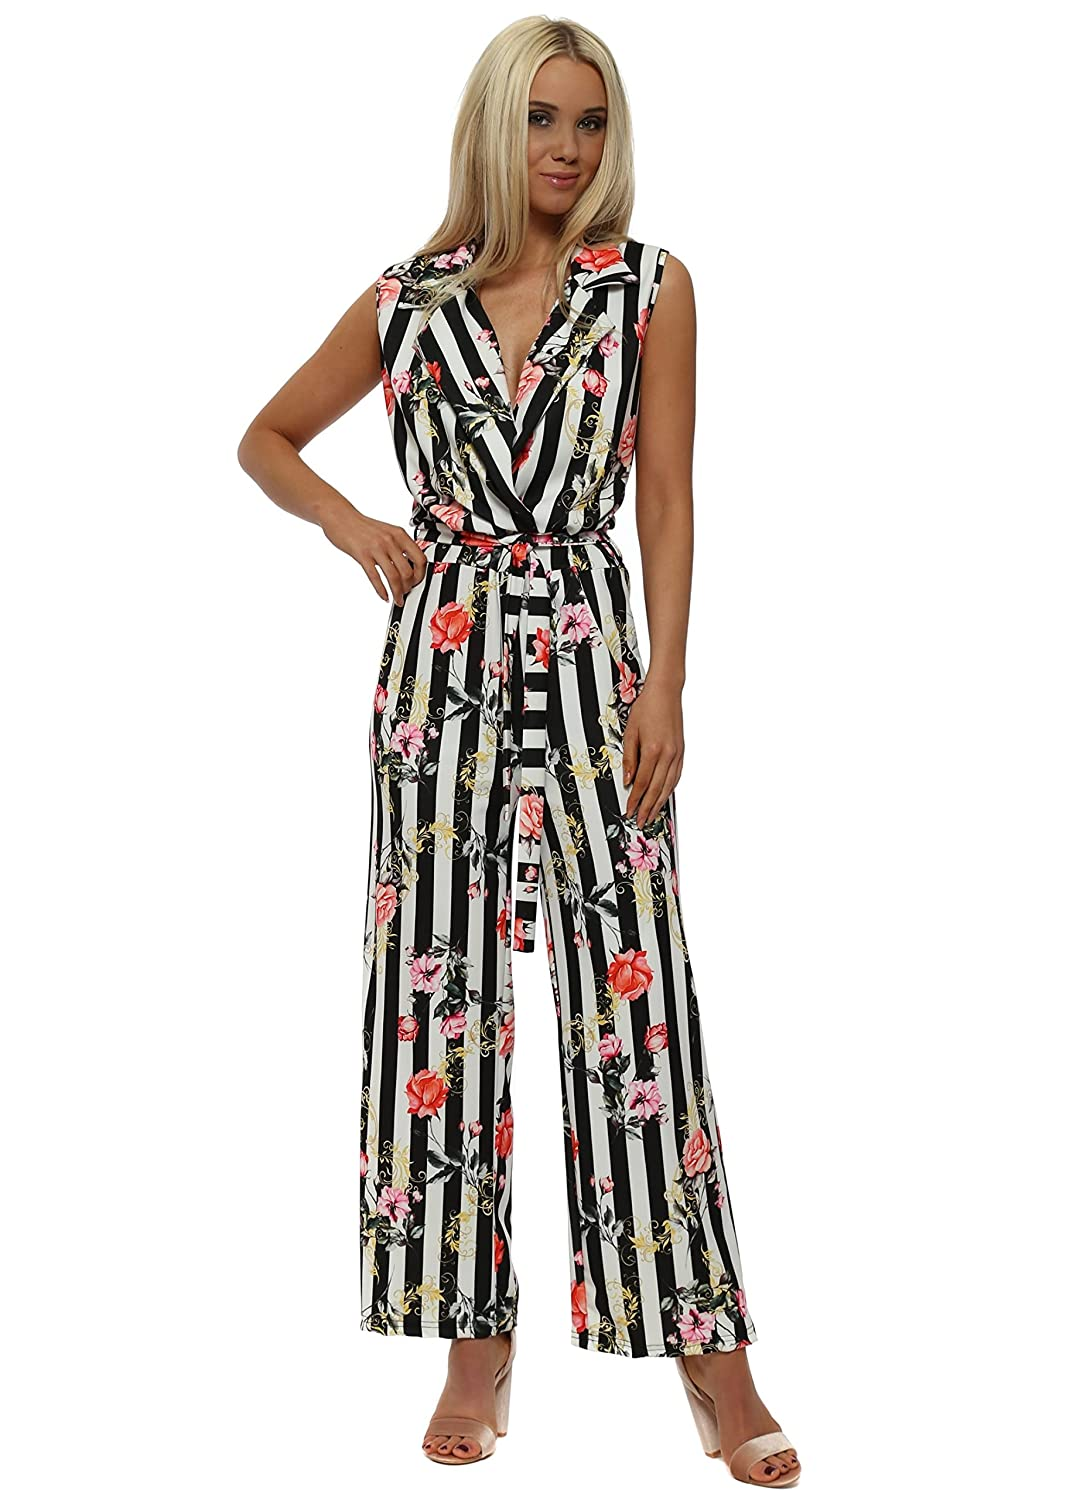 a026d522bec French Boutique Pinstripe Floral Jumpsuit One Size Black  Amazon.co.uk   Clothing